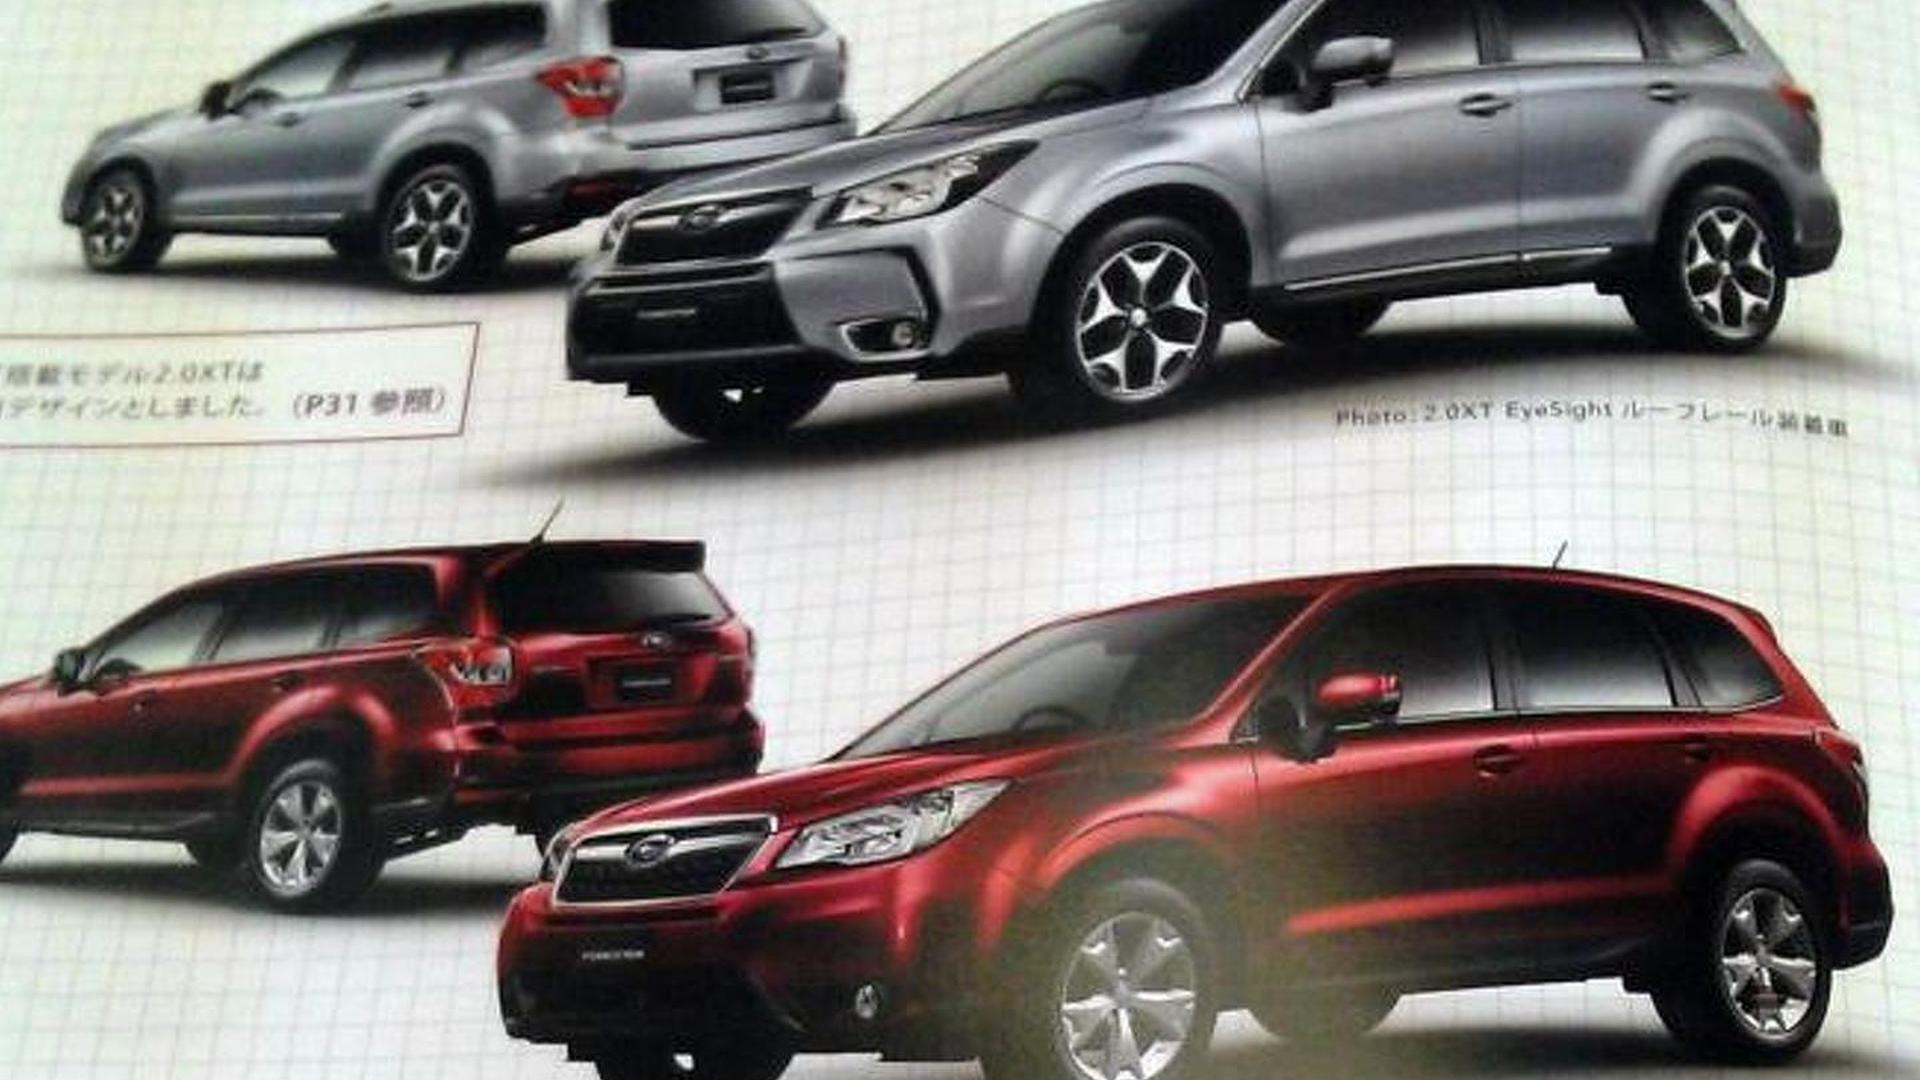 2014 Subaru Forester revealed in leaked brochure